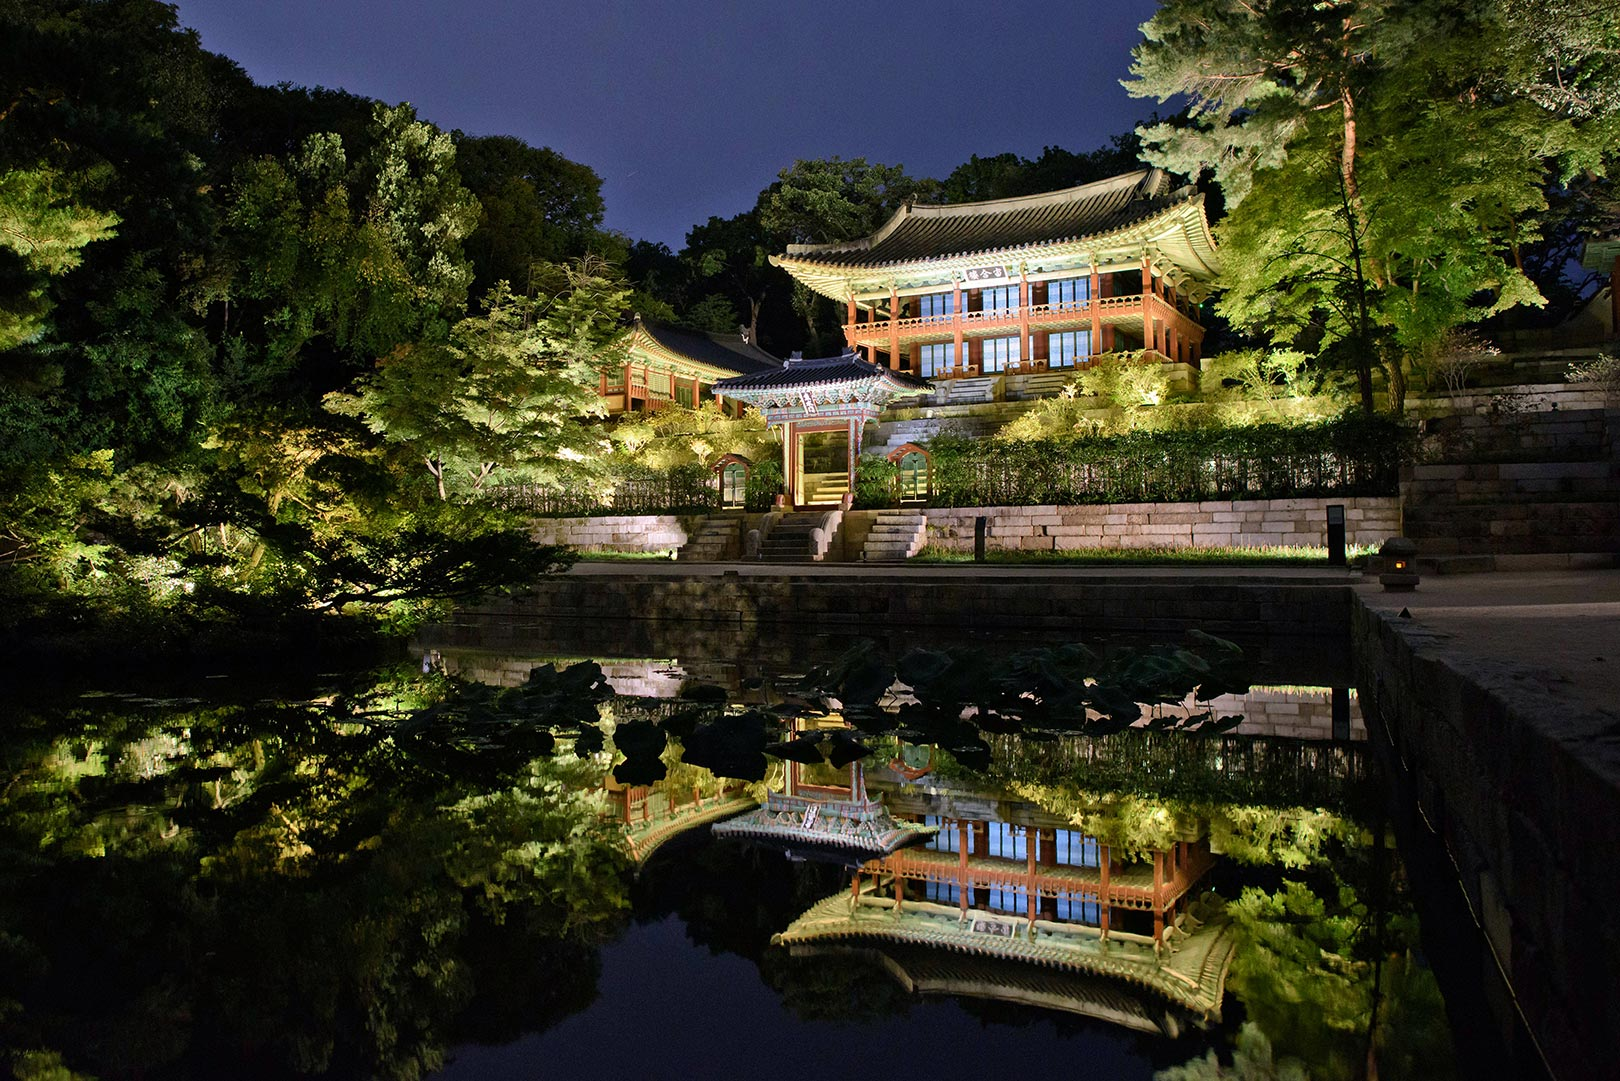 Picture of Changdeokgung Palace at night, Seoul, South Korea